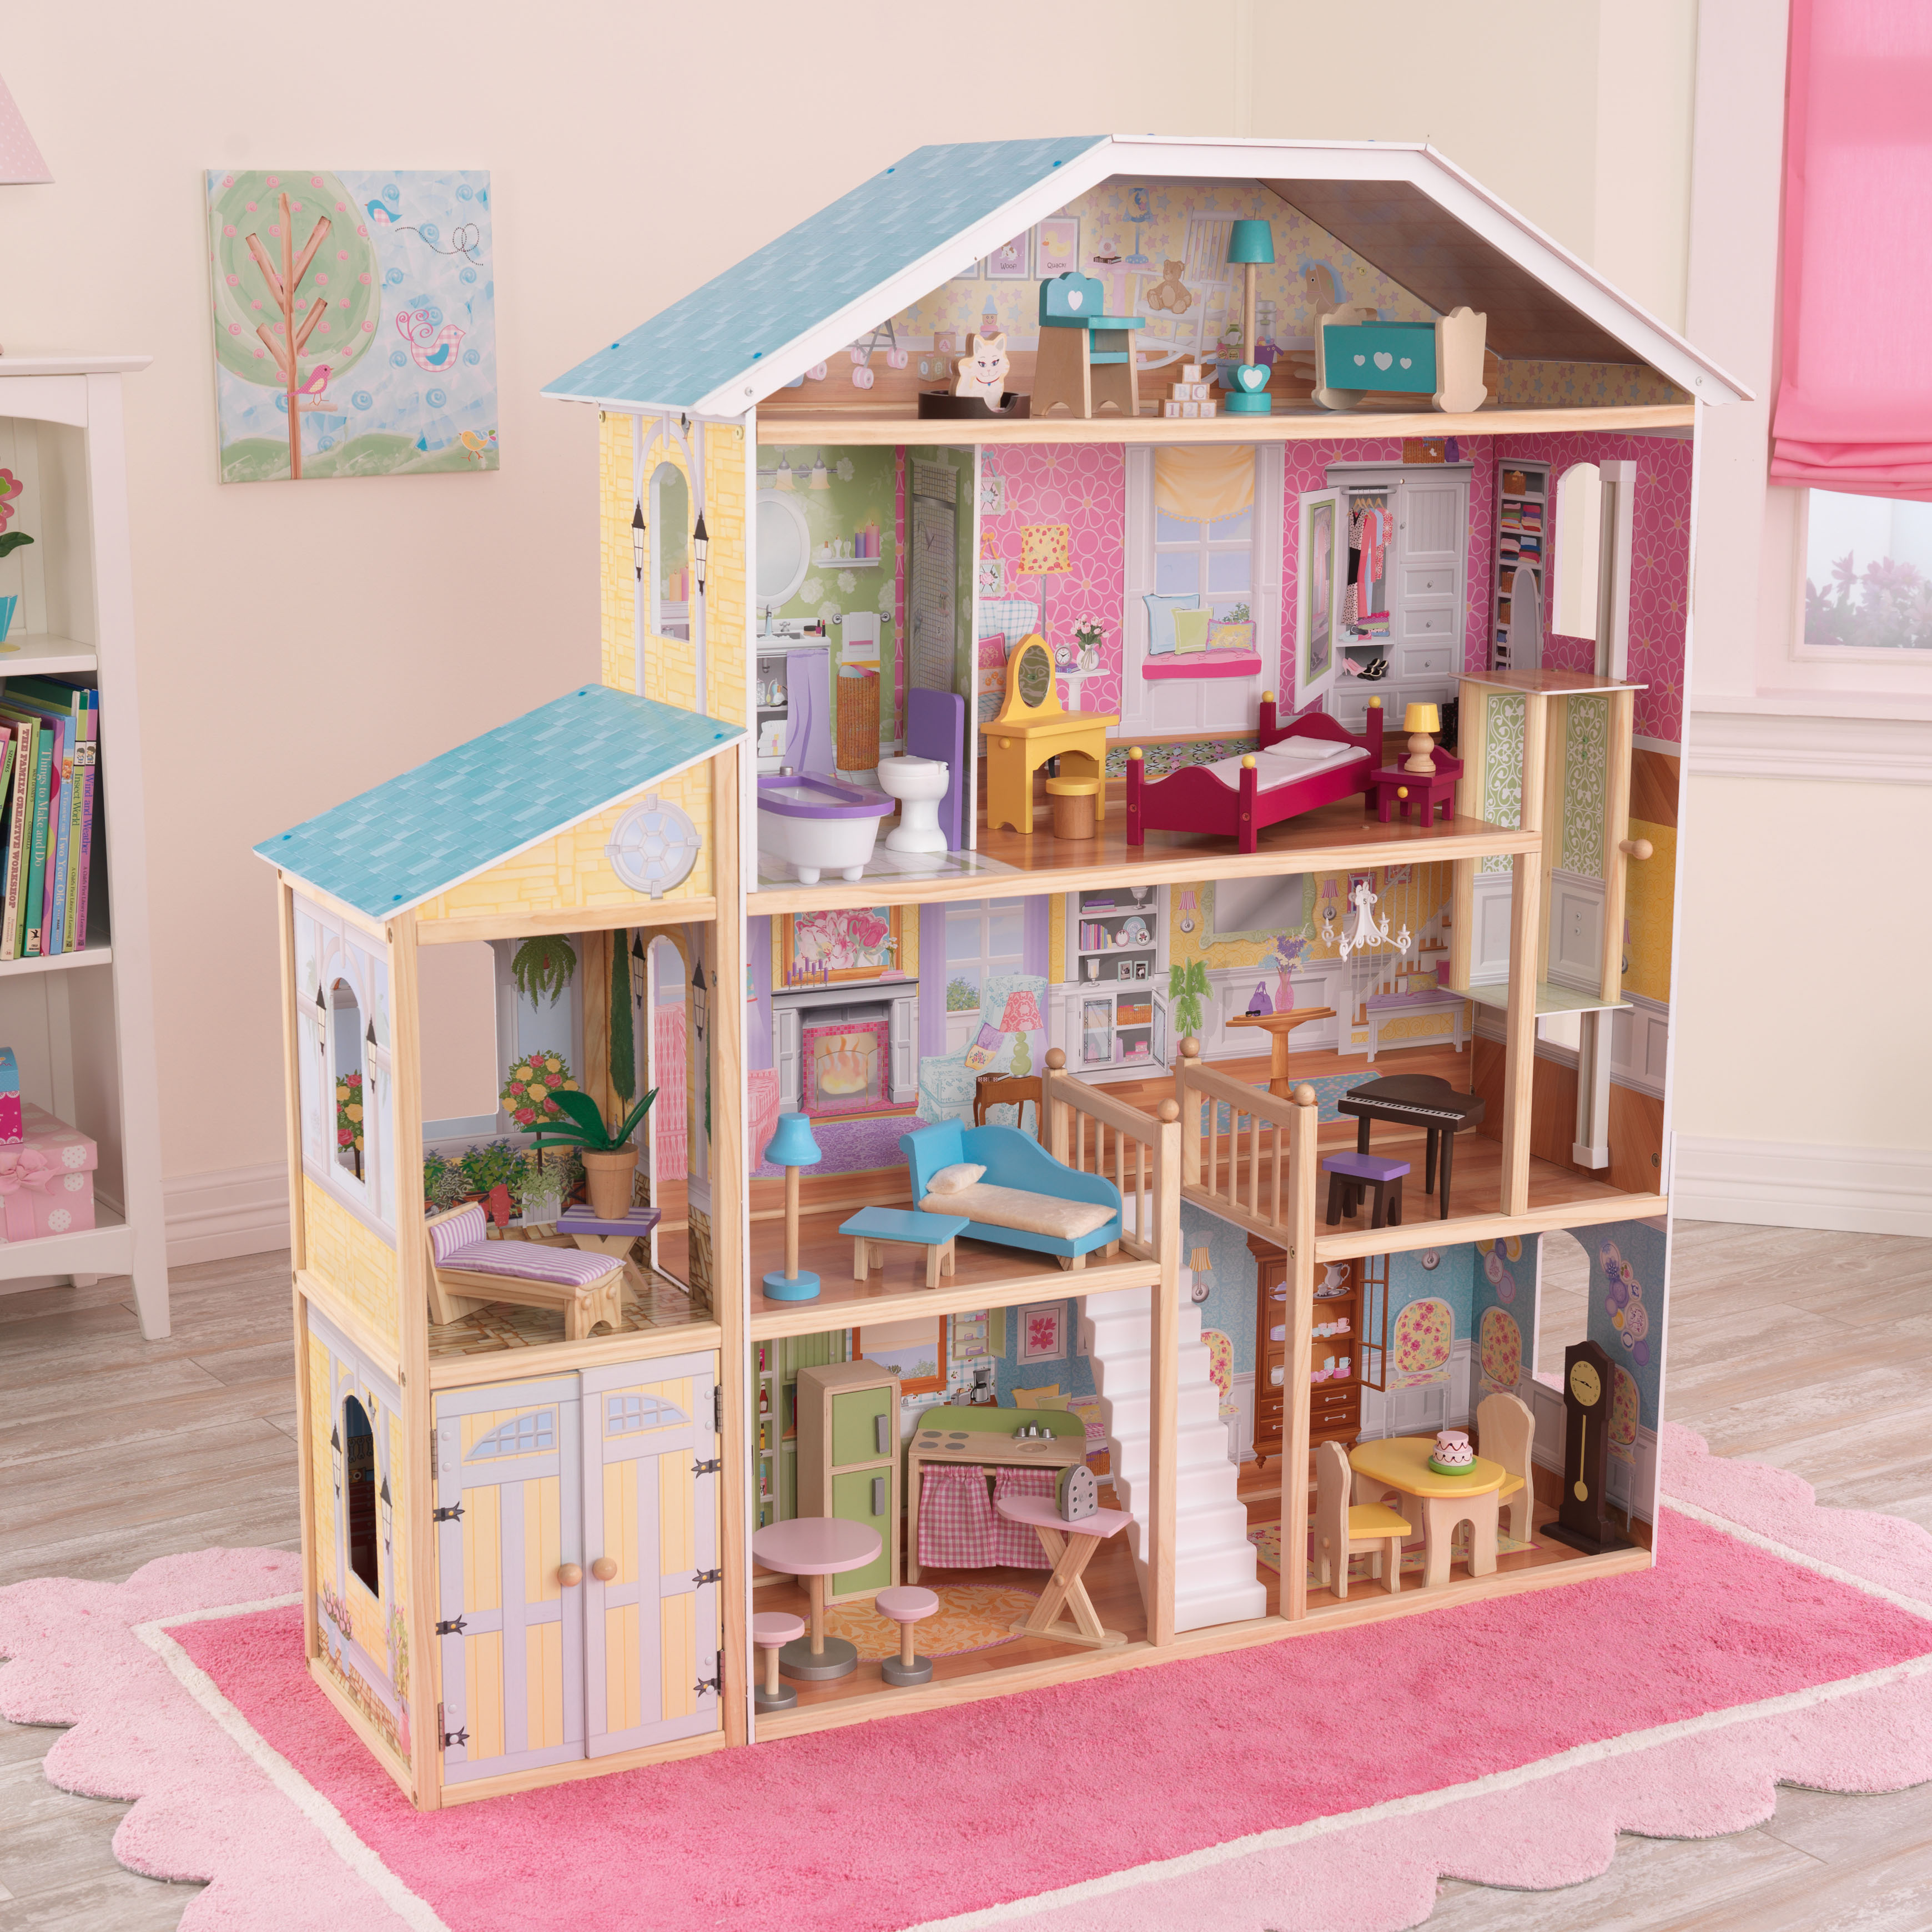 KidKraft Majestic Mansion Dollhouse with 34 Accessories Walmartcom